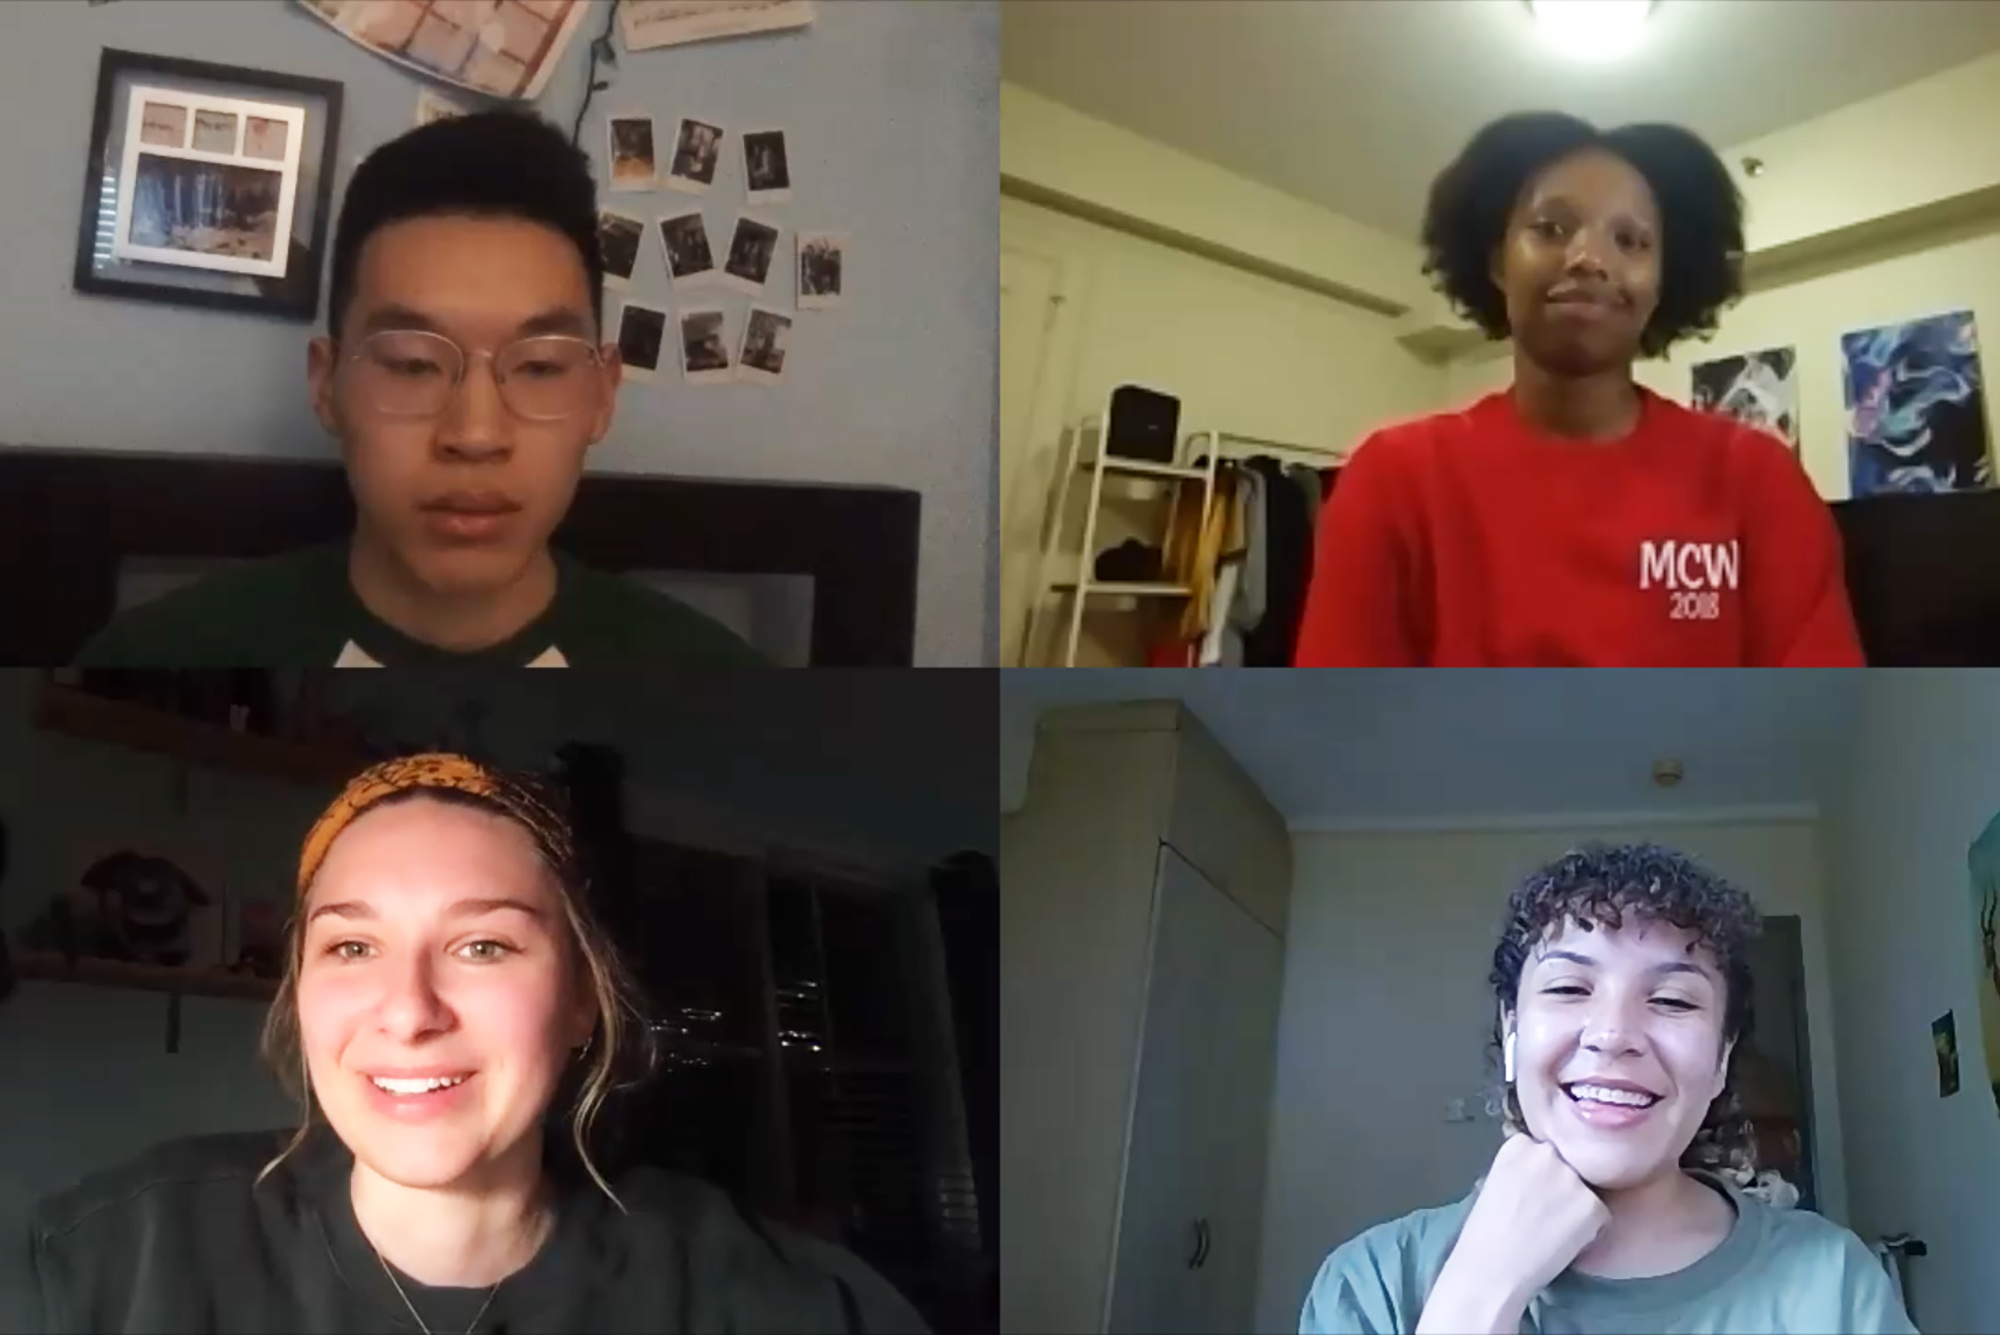 Still of four students, Joshua Pei (CAS'21), Morgan Moscinski (CFA'21), Michelle Njoroge (CAS'20), and Rownyn Curry (CAS'21) on a Zoom call from a video in which the students discuss the new normal, learning remotely.